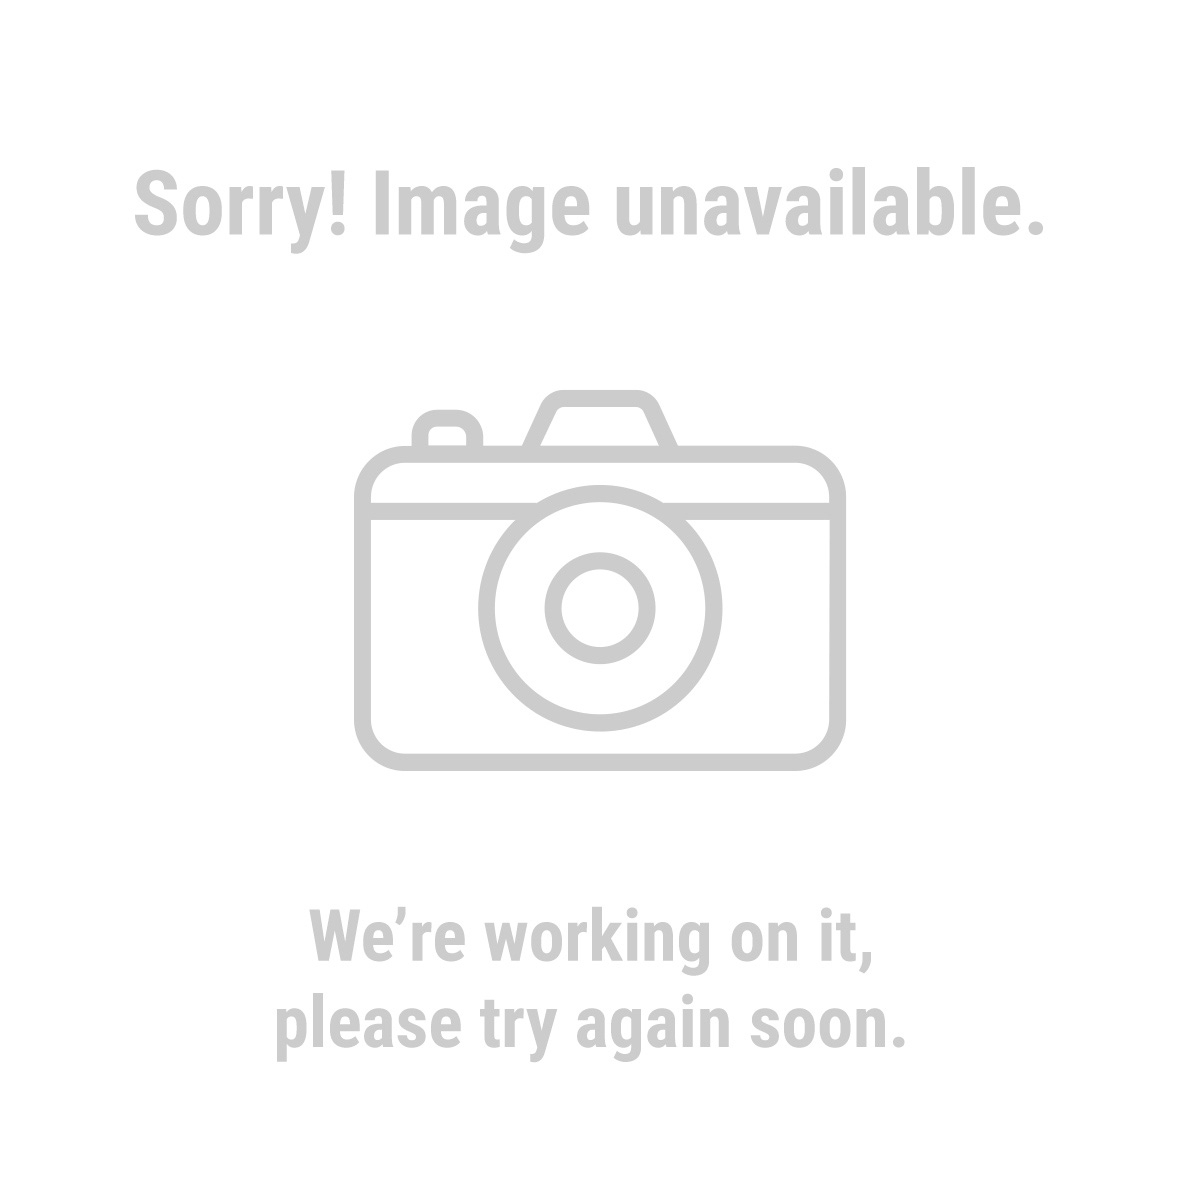 Bunker Hill Security 60524 60 LED Solar Security Light